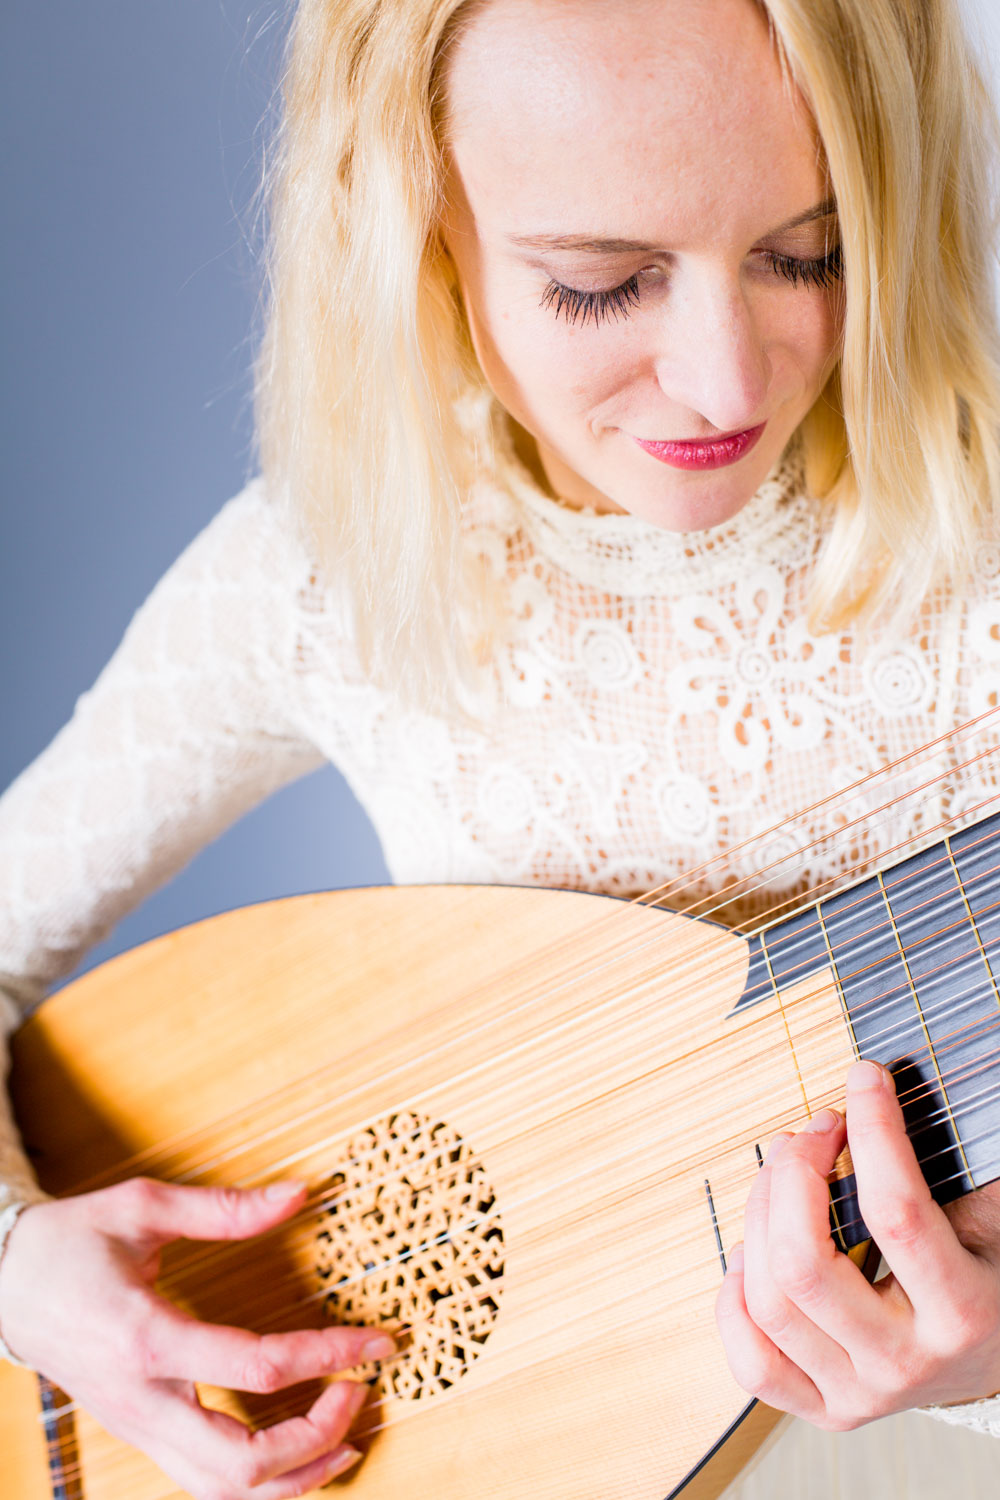 Ieva Baltmiskyte on lute